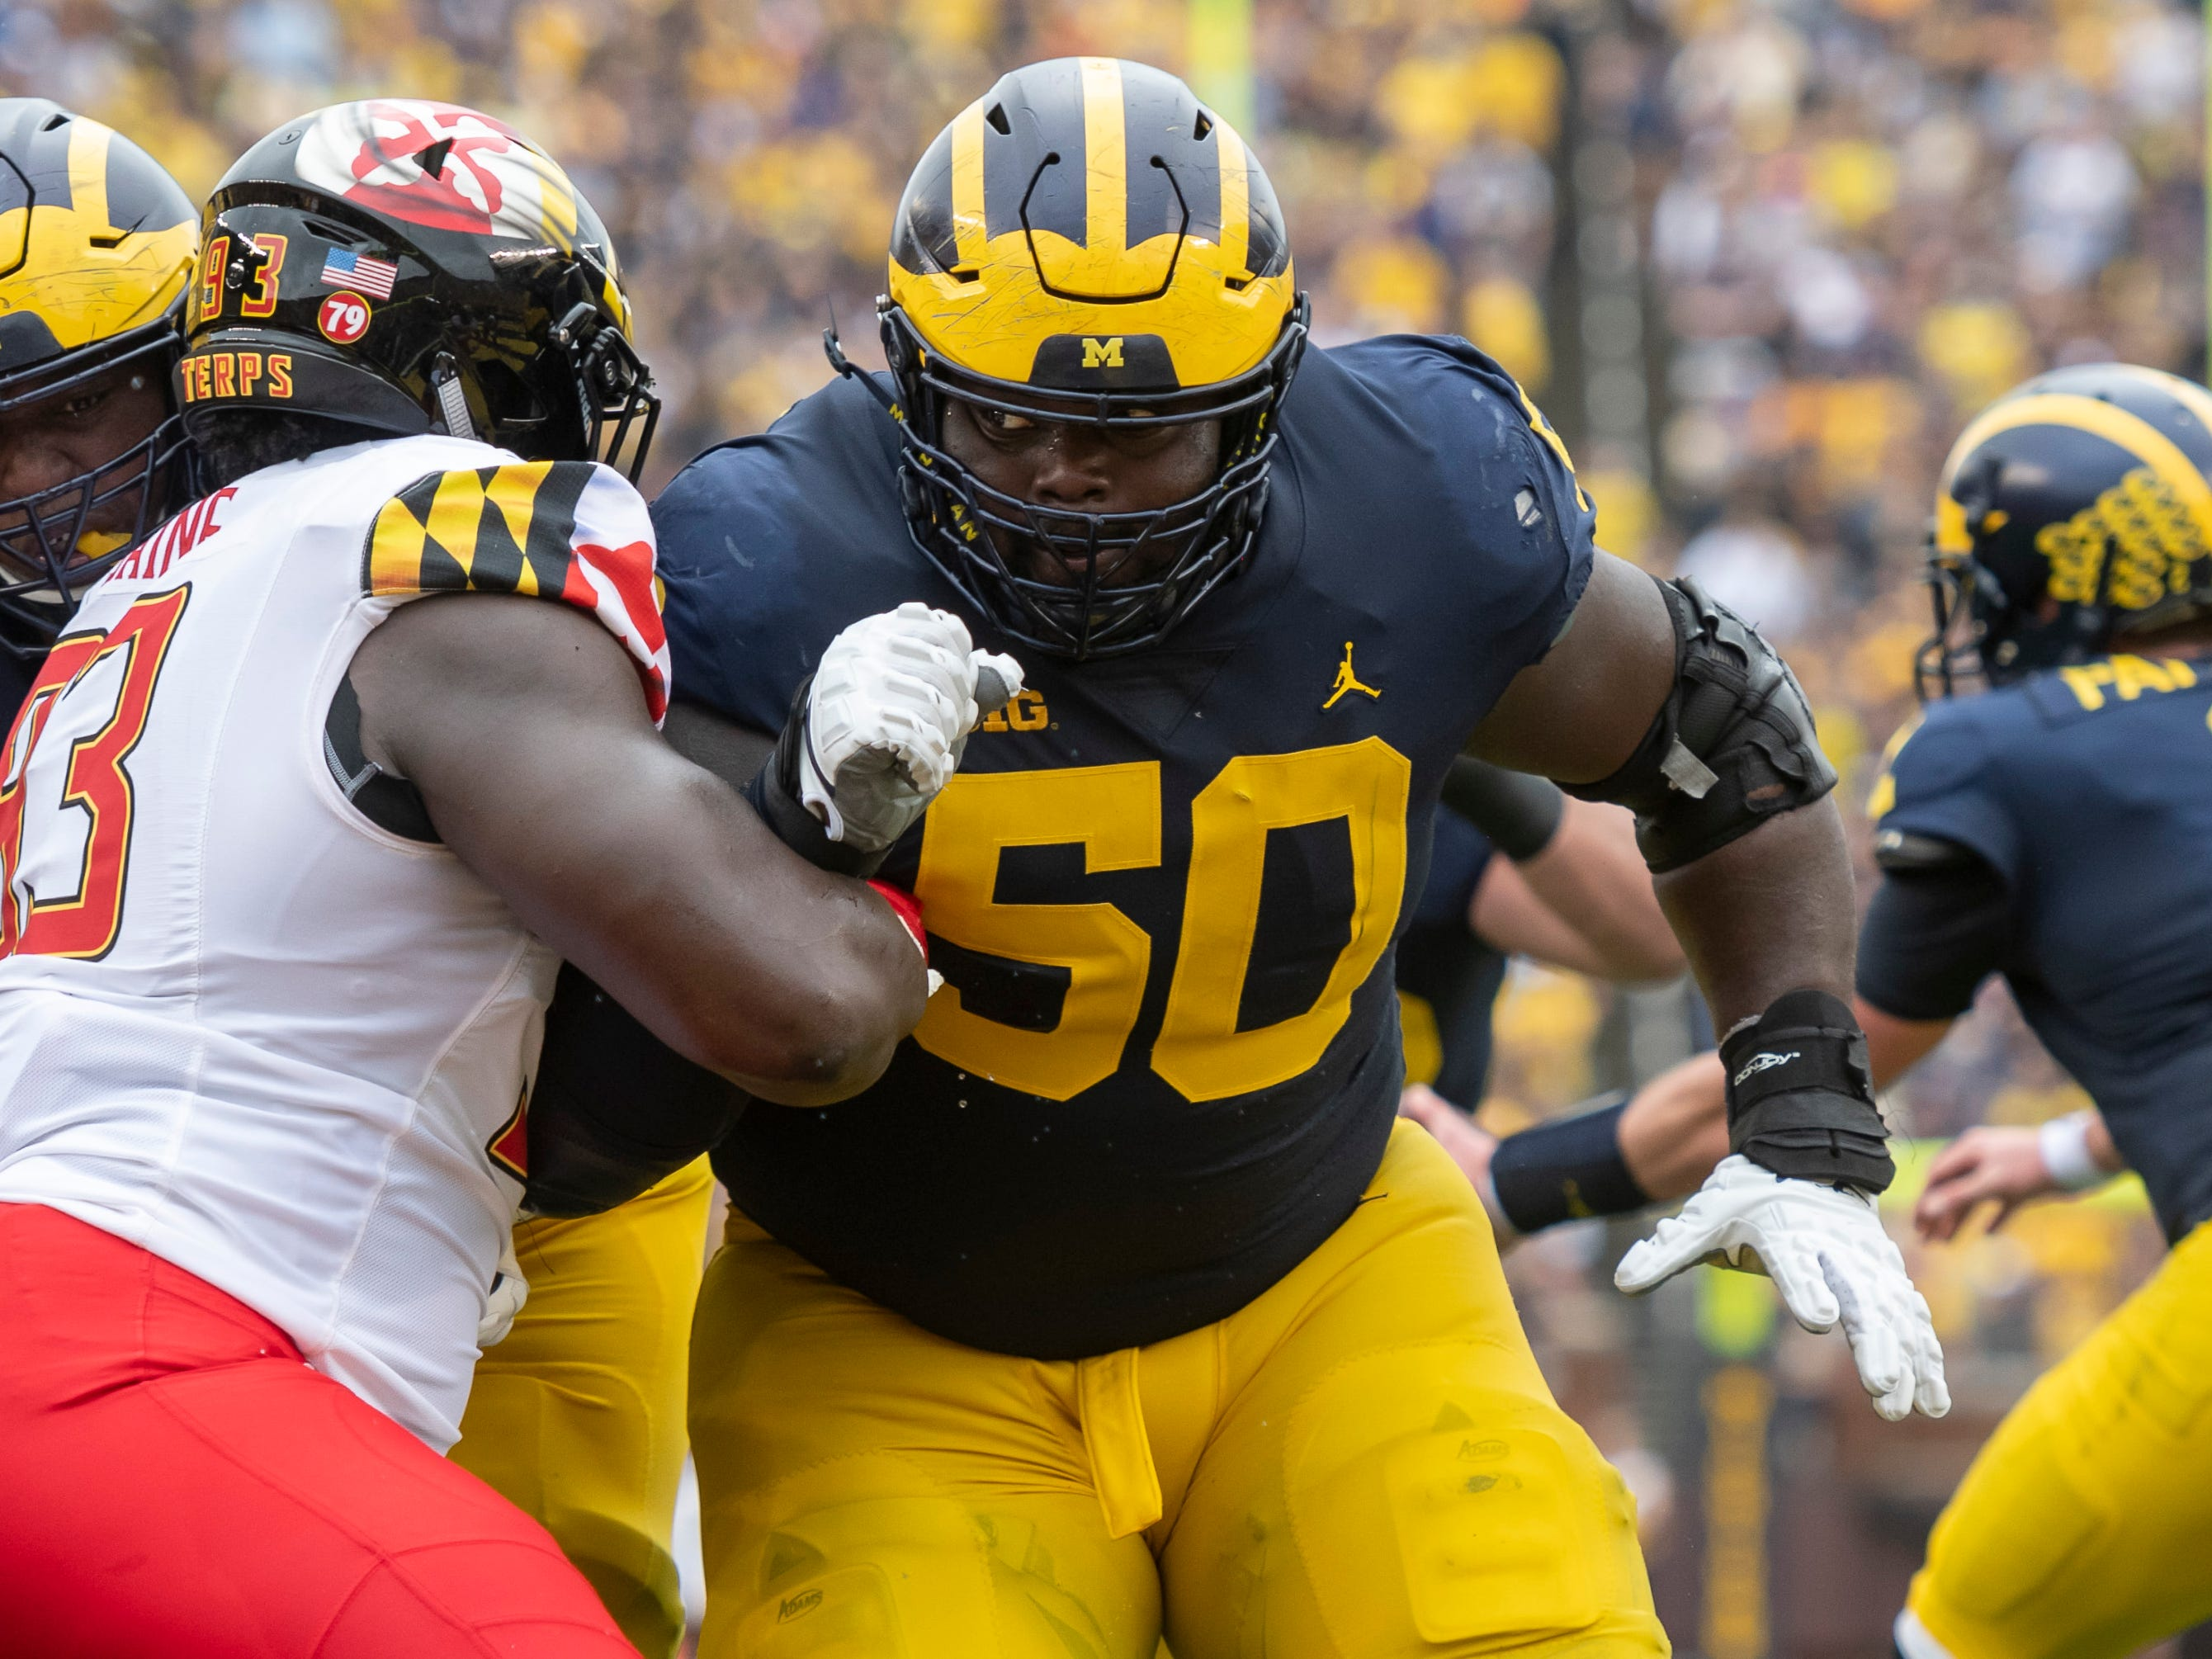 RIGHT GUARD: Michael Onwenu – The Cass Tech product was a third-team All-Big Ten selection last season and has made 21 starts in 33 games played at Michigan.